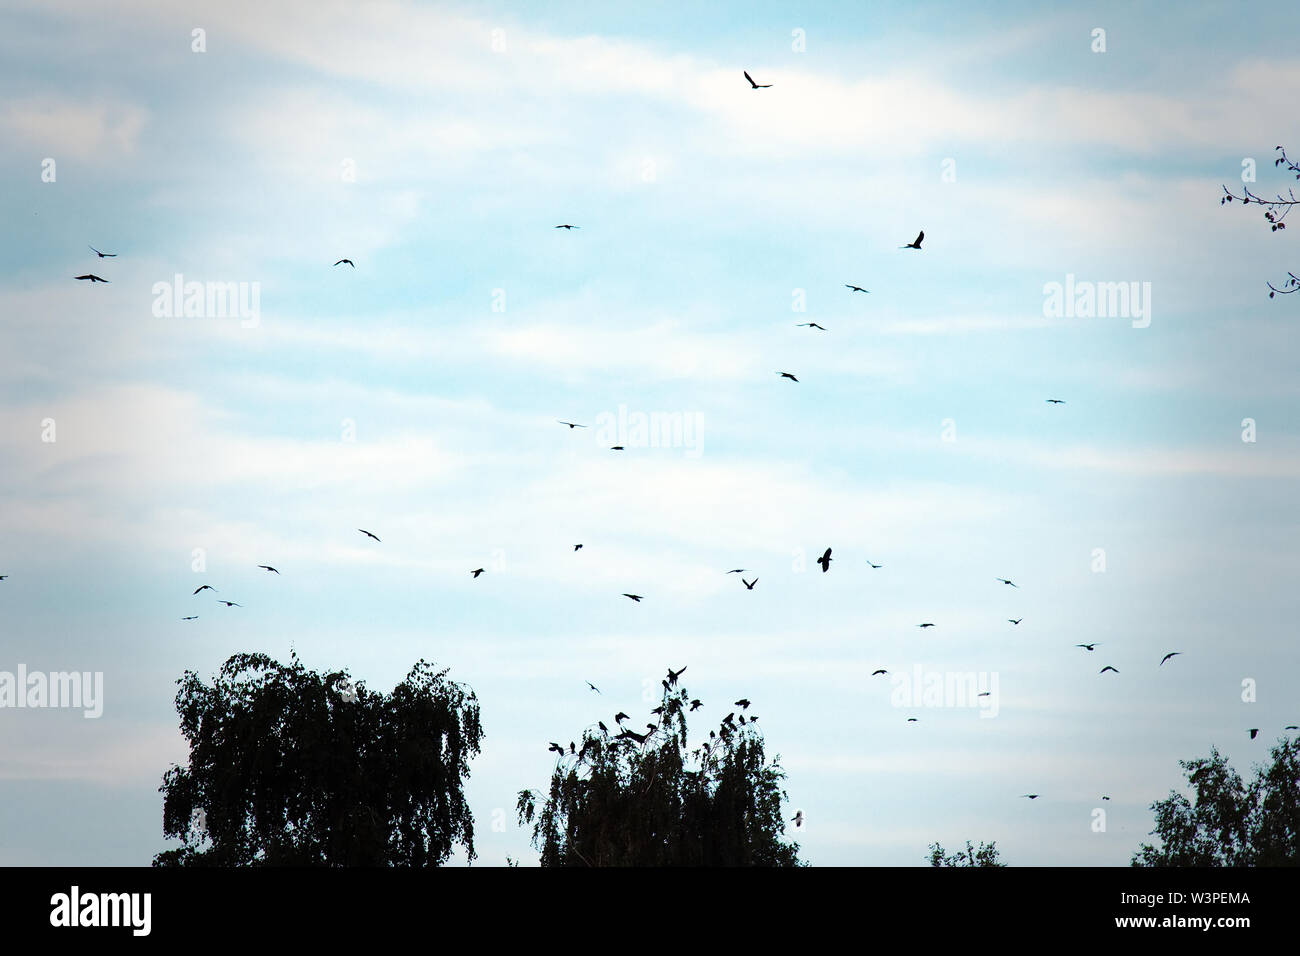 A large flock of hooded crows flies against the sky with flying high-altitude clouds and on the tops of trees - Stock Image